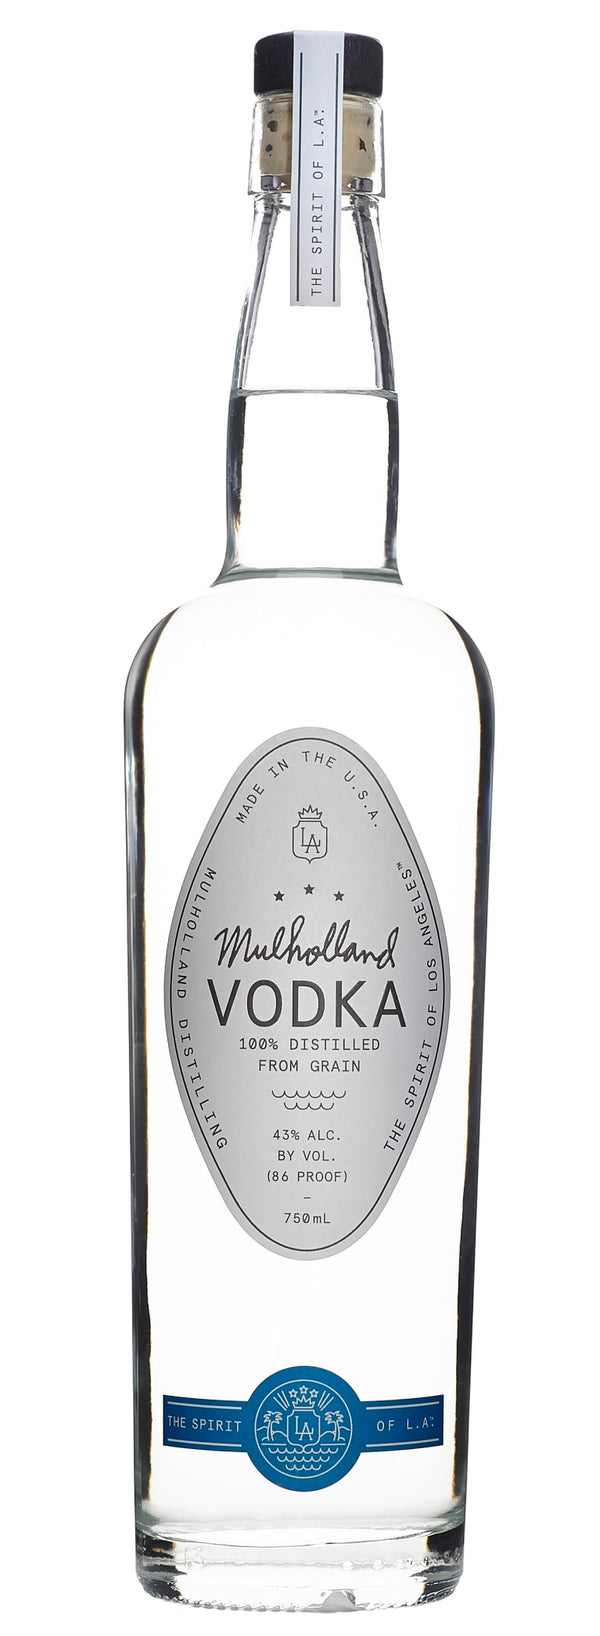 Mulholland Vodka - Available at Wooden Cork